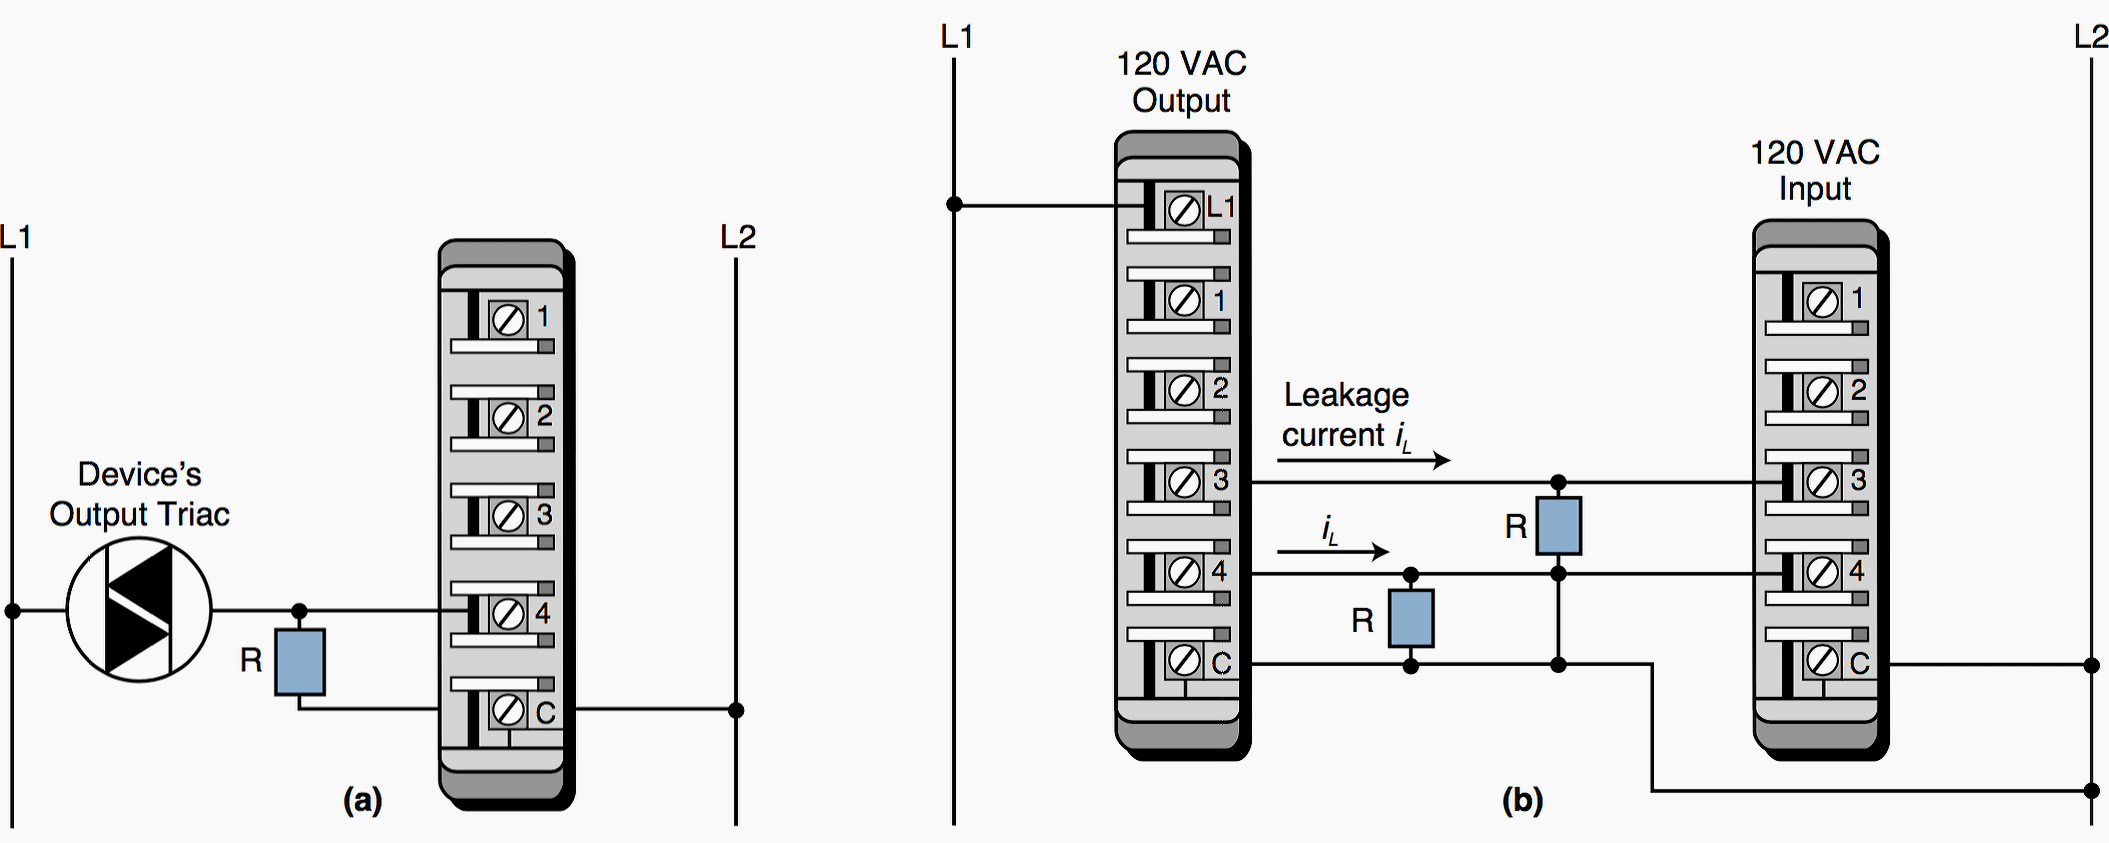 Wireless Usb Adapter Schematic